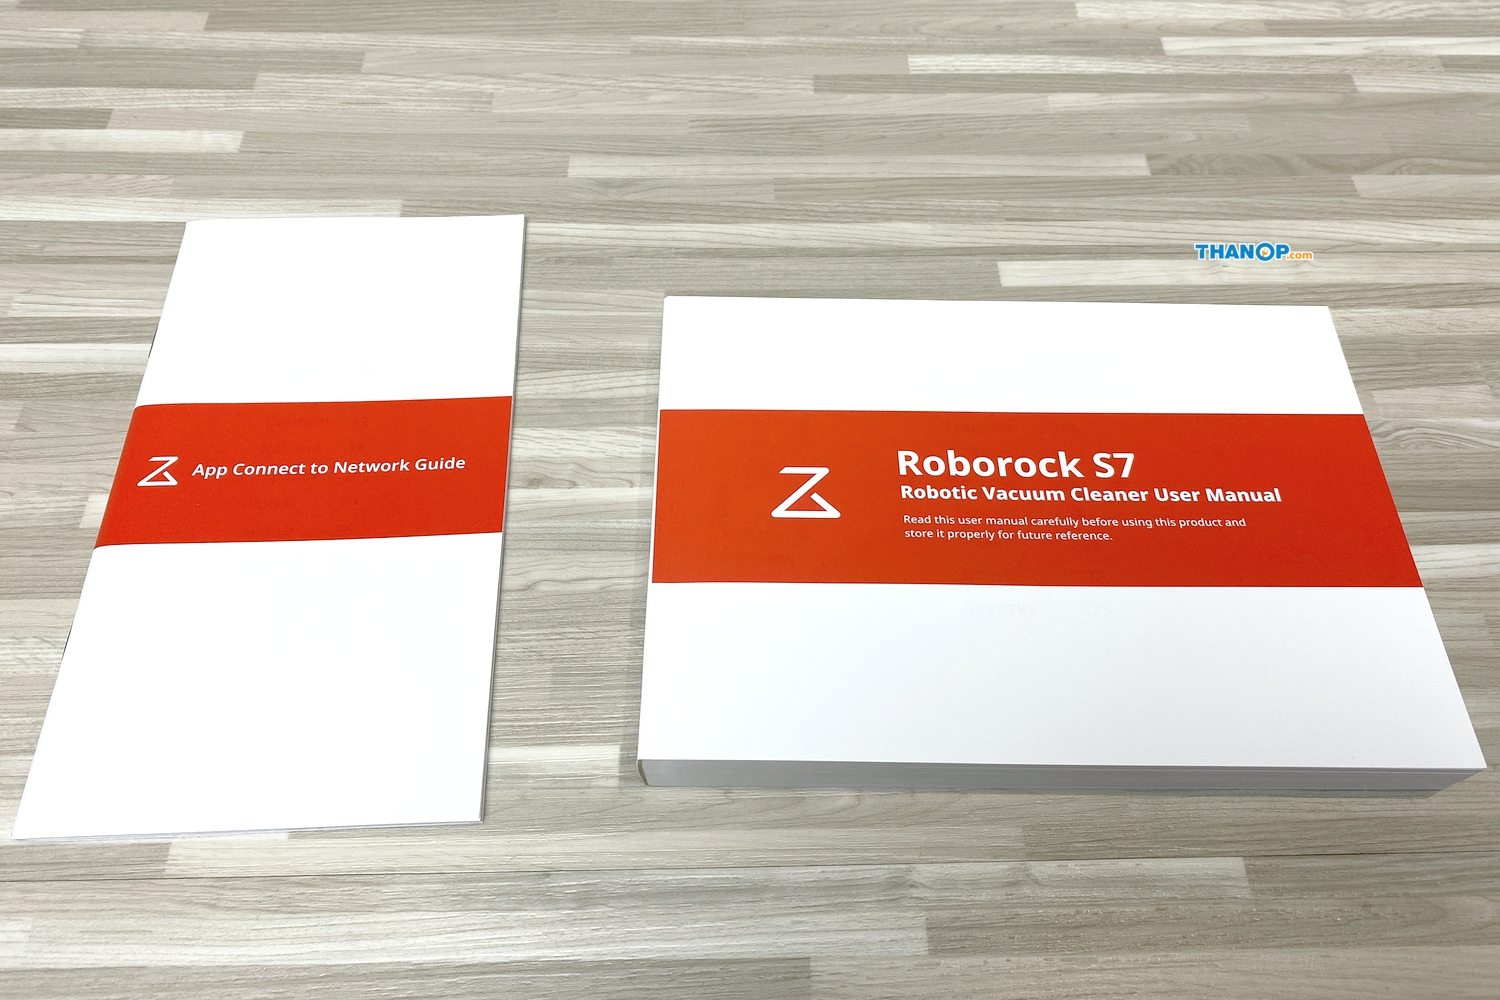 roborock-s7-user-manual-and-app-connect-to-network-guide